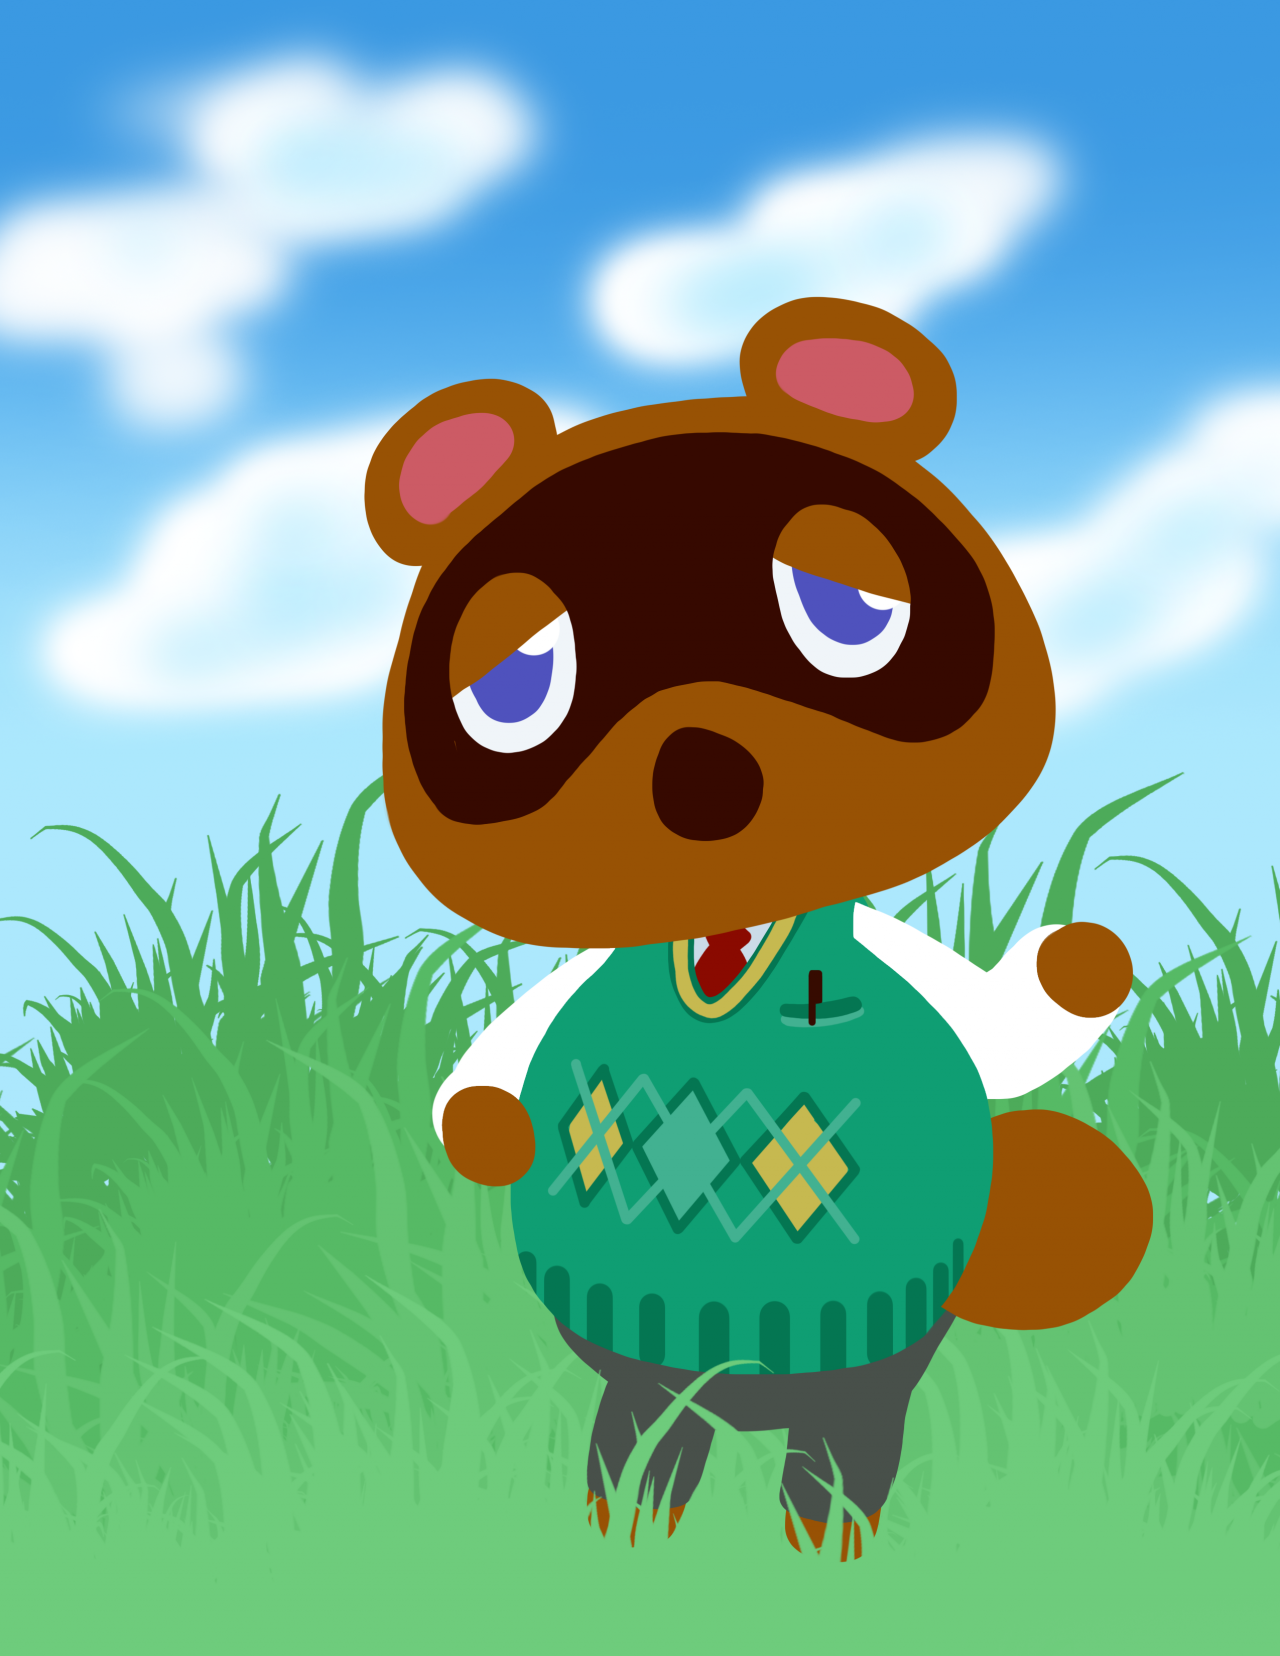 Animal Crossing players seek New Horizons